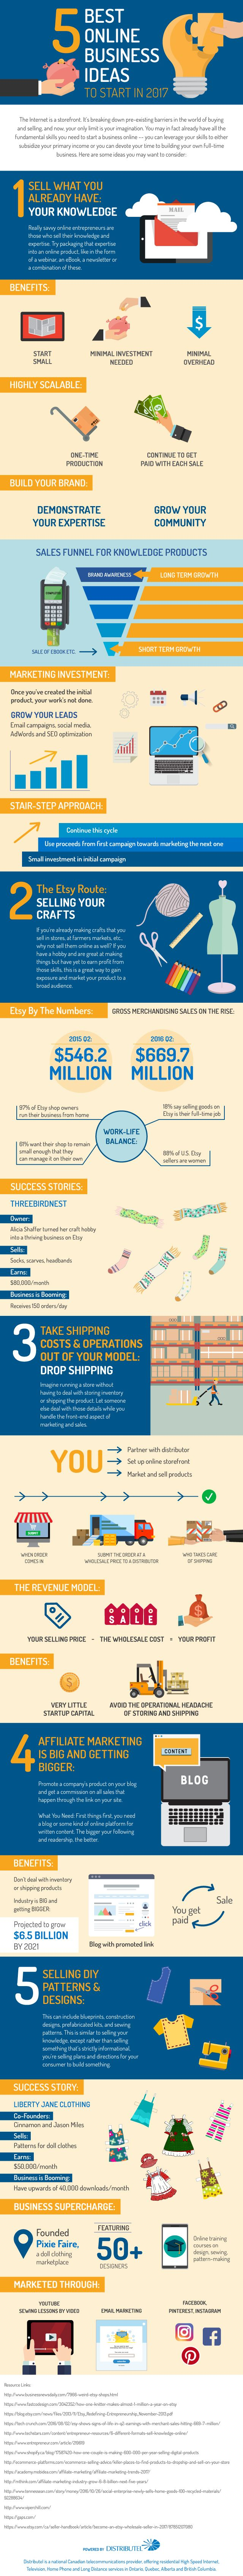 5 Best Online Businesses to Start This Year (Infographic)